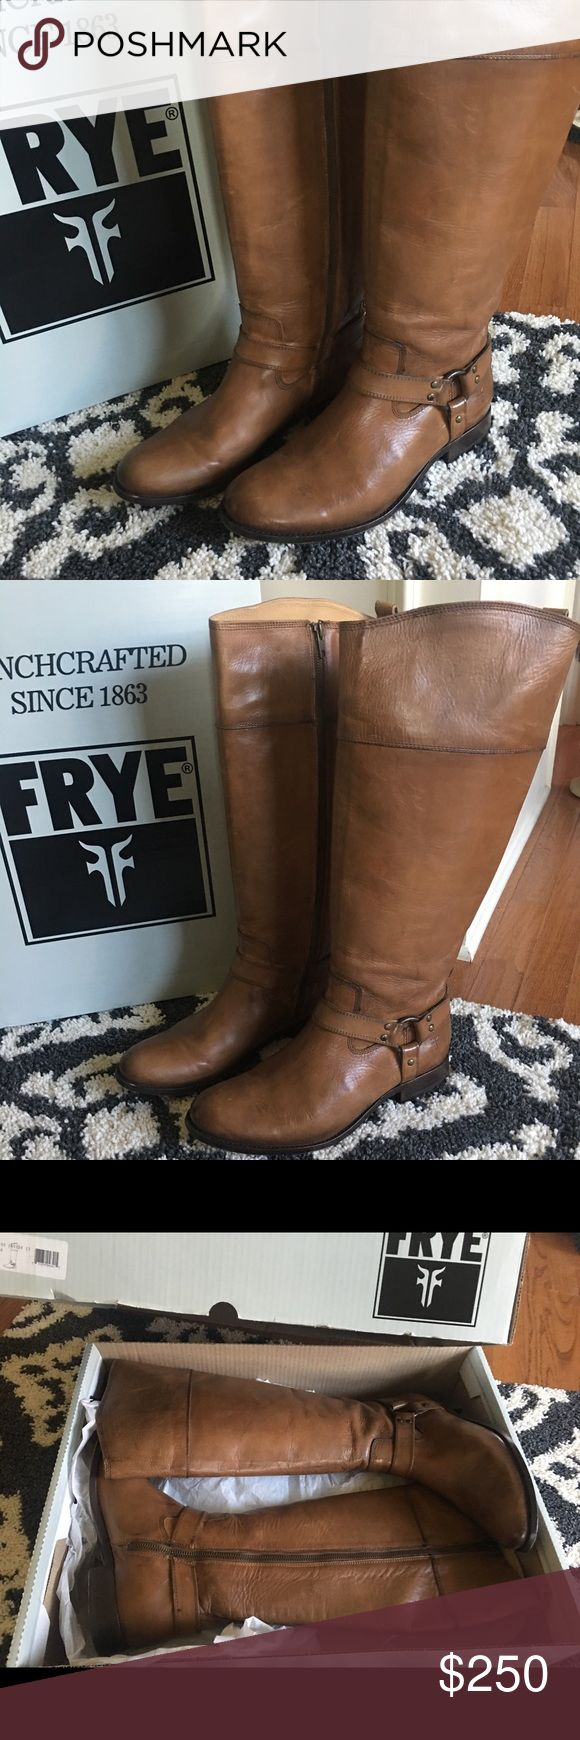 Frye Melissa Harness Riding Boot/ Camel color Only worn one time for 15 min. These are beautiful Like New Frye boots! Perfect condition. Extended calf. I would keep them but they are too big. Frye boots will last a lifetime! Frye Shoes Heeled Boots